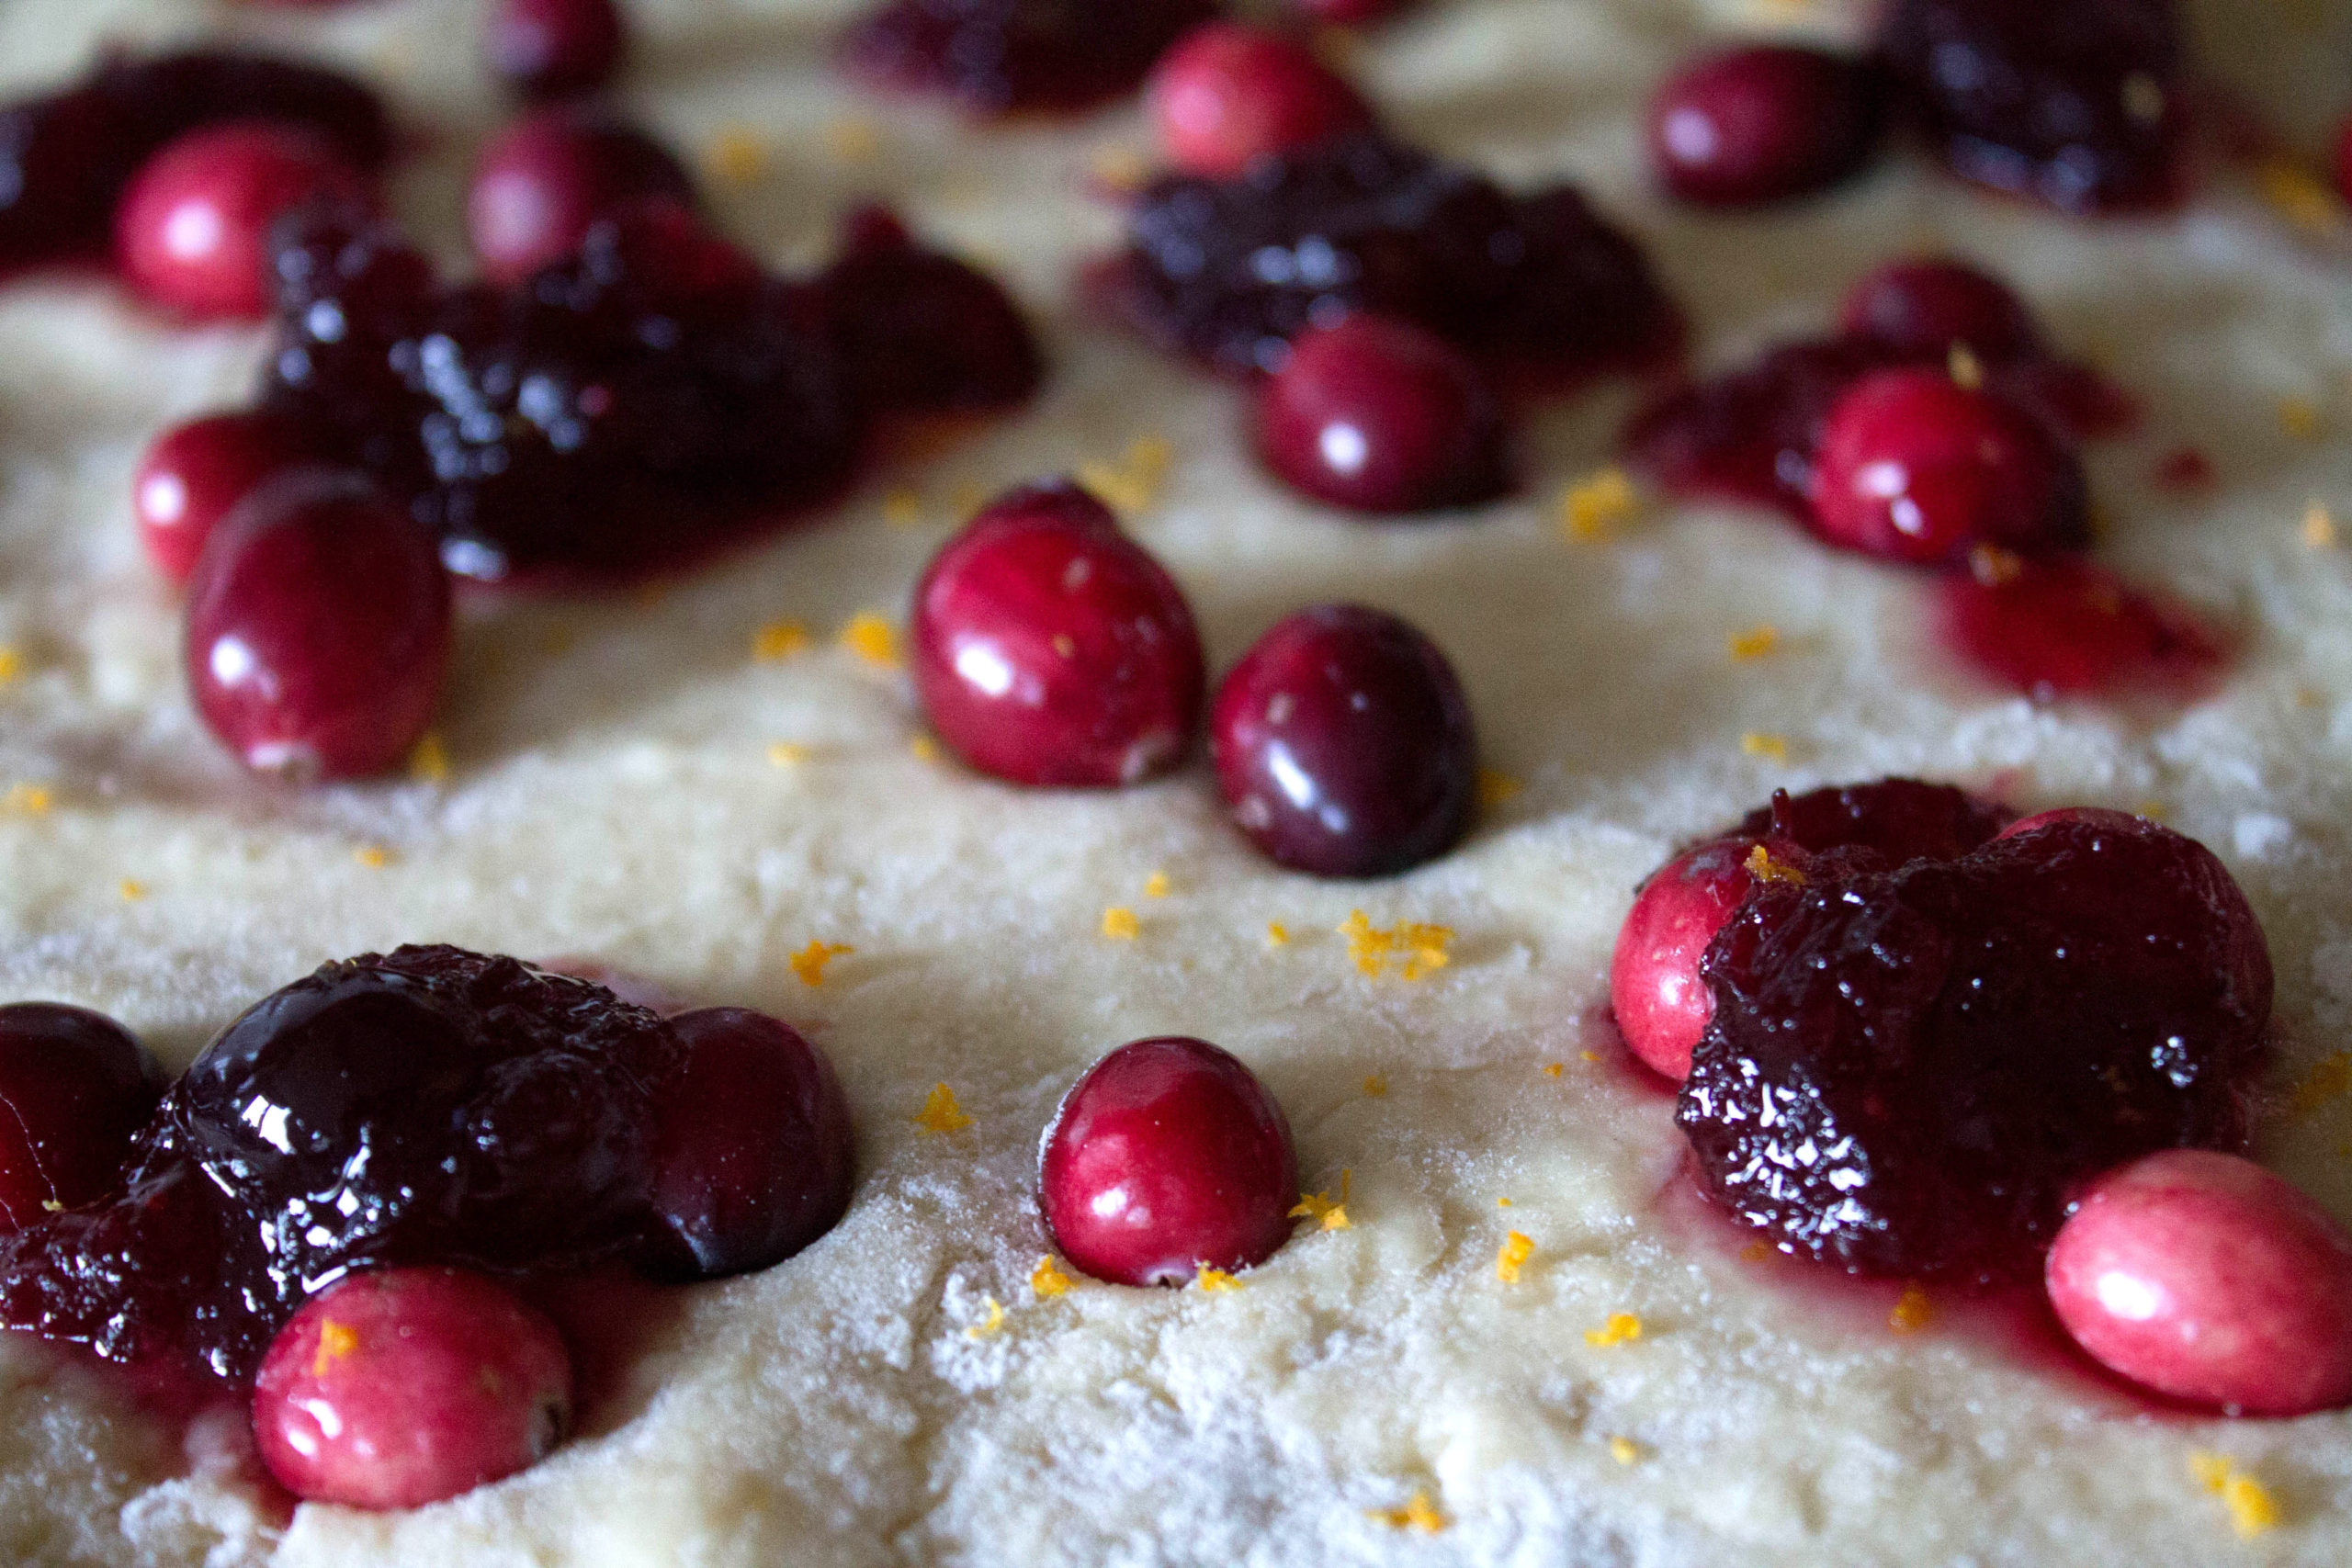 scone dough with cranberries and grated orange zest